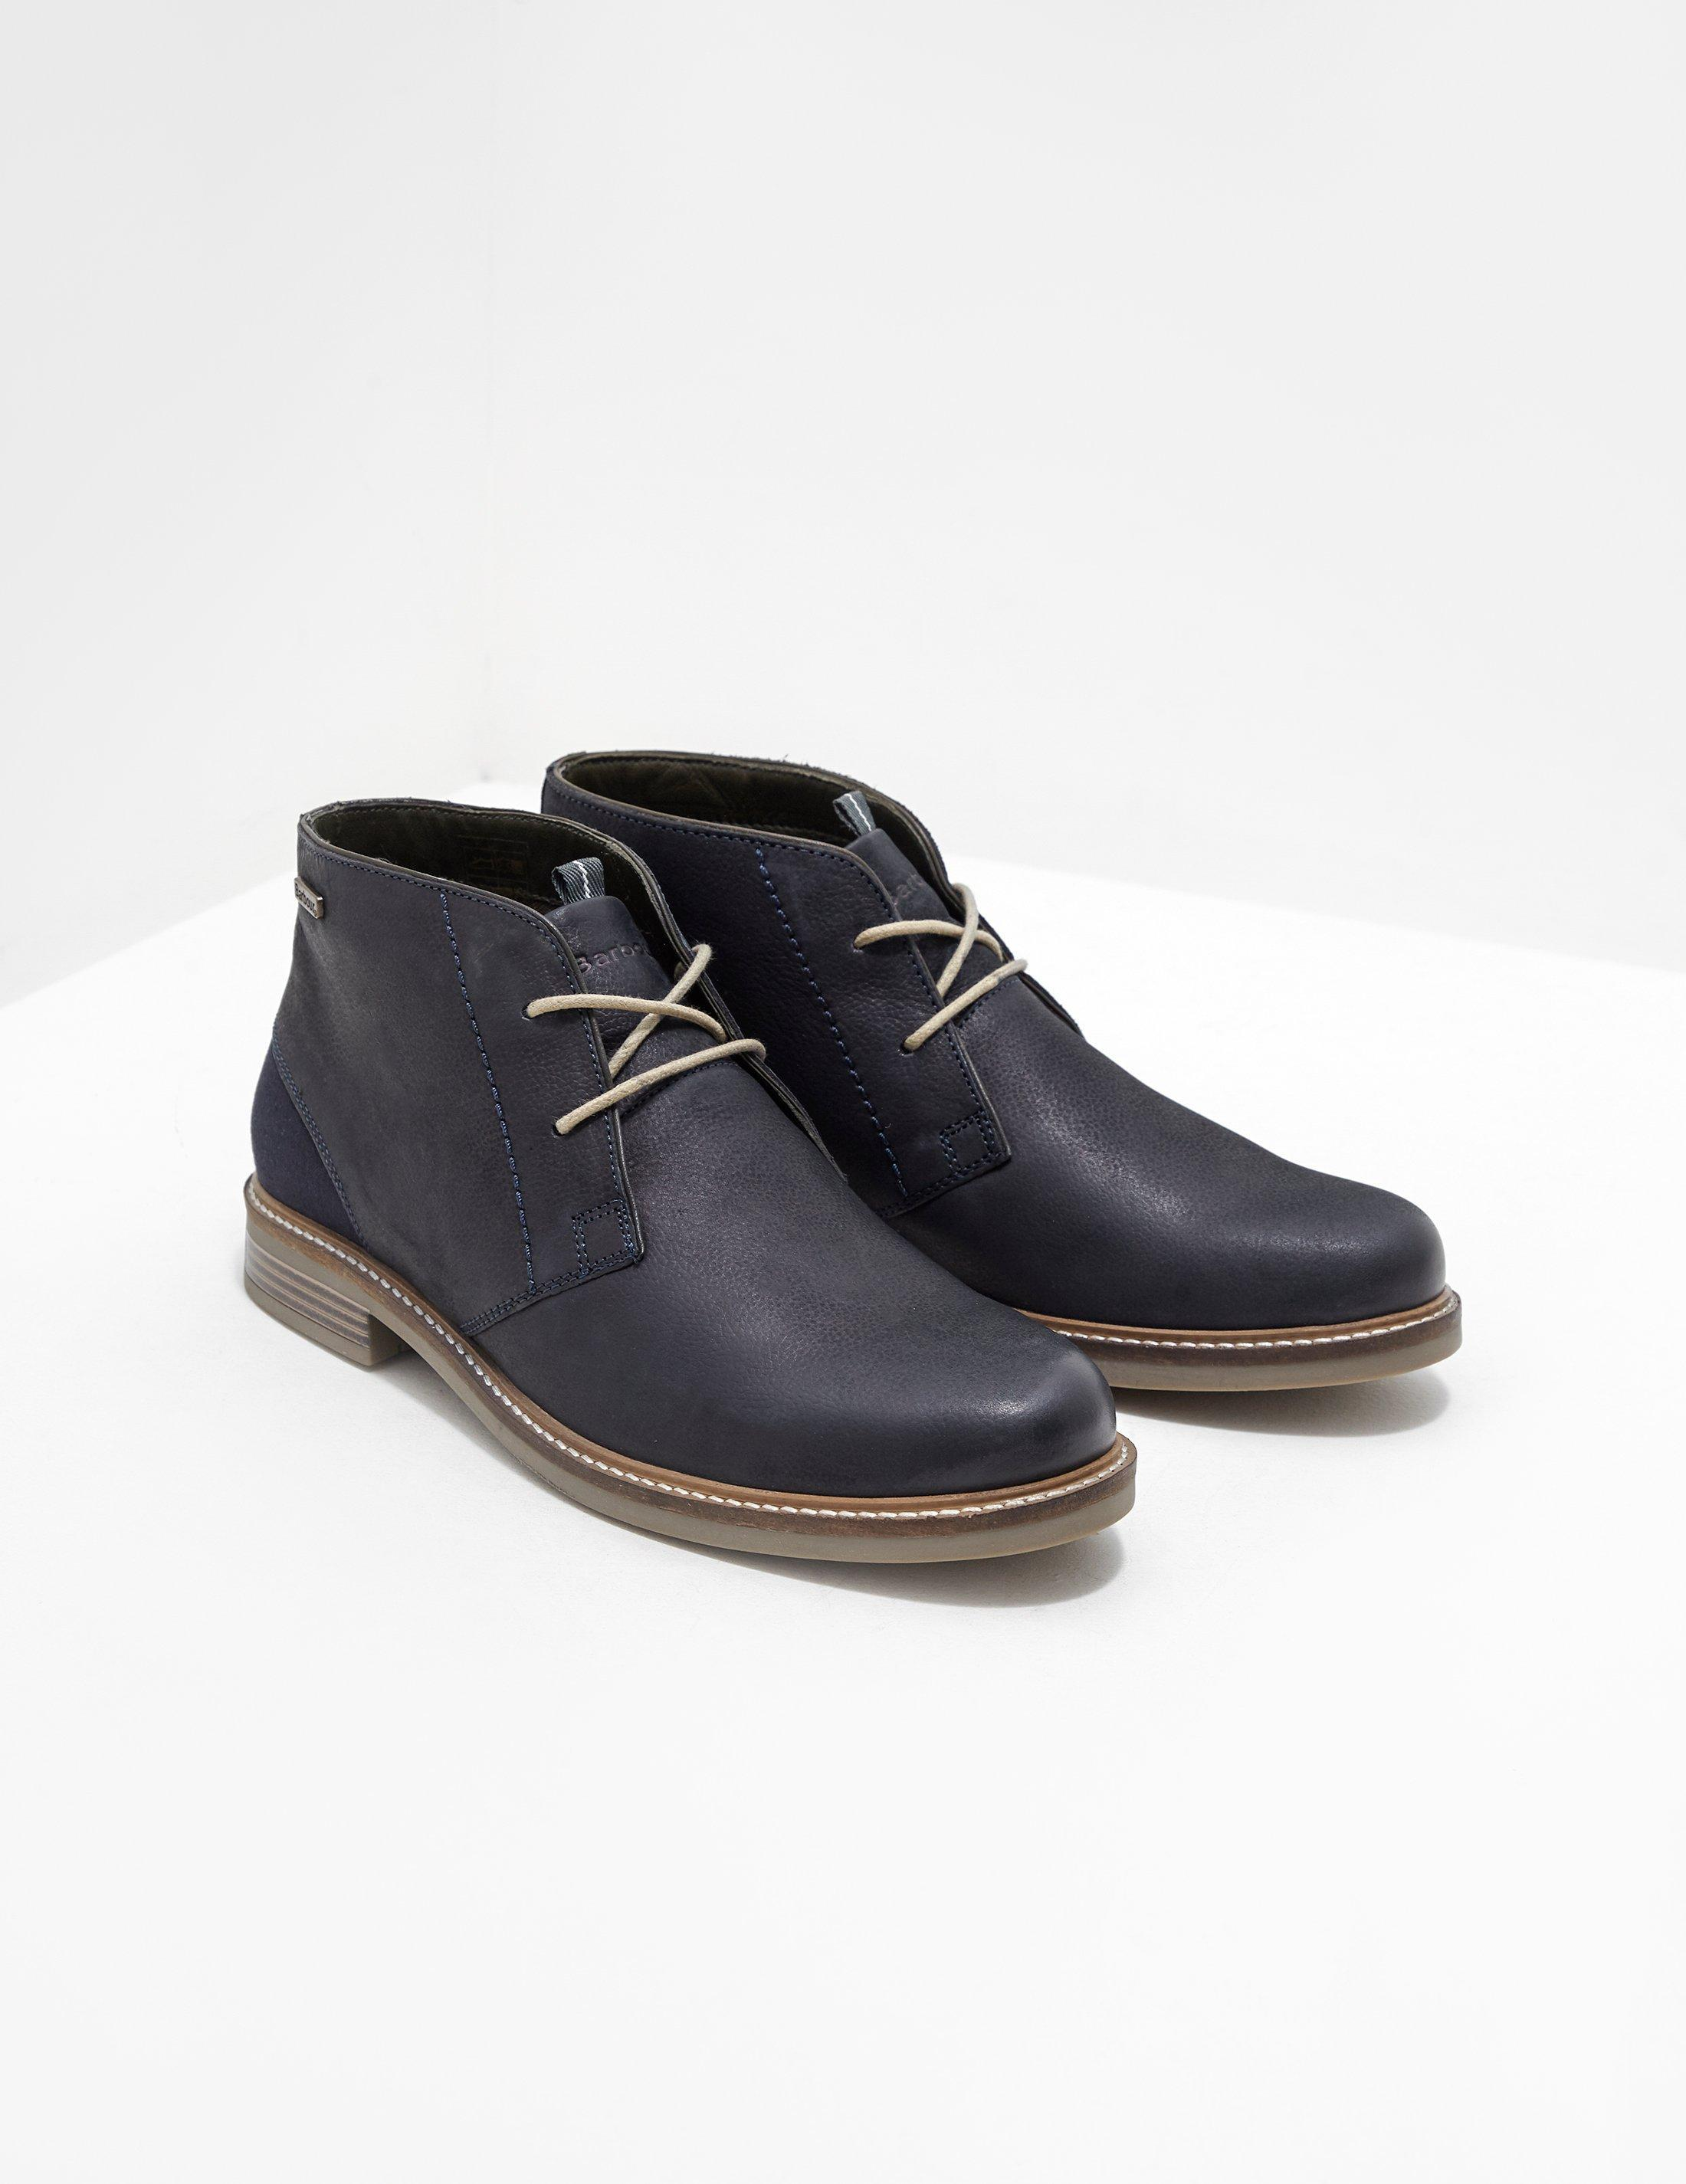 32ef70713f4 Barbour Readhead Boot Navy Blue in Blue for Men - Lyst